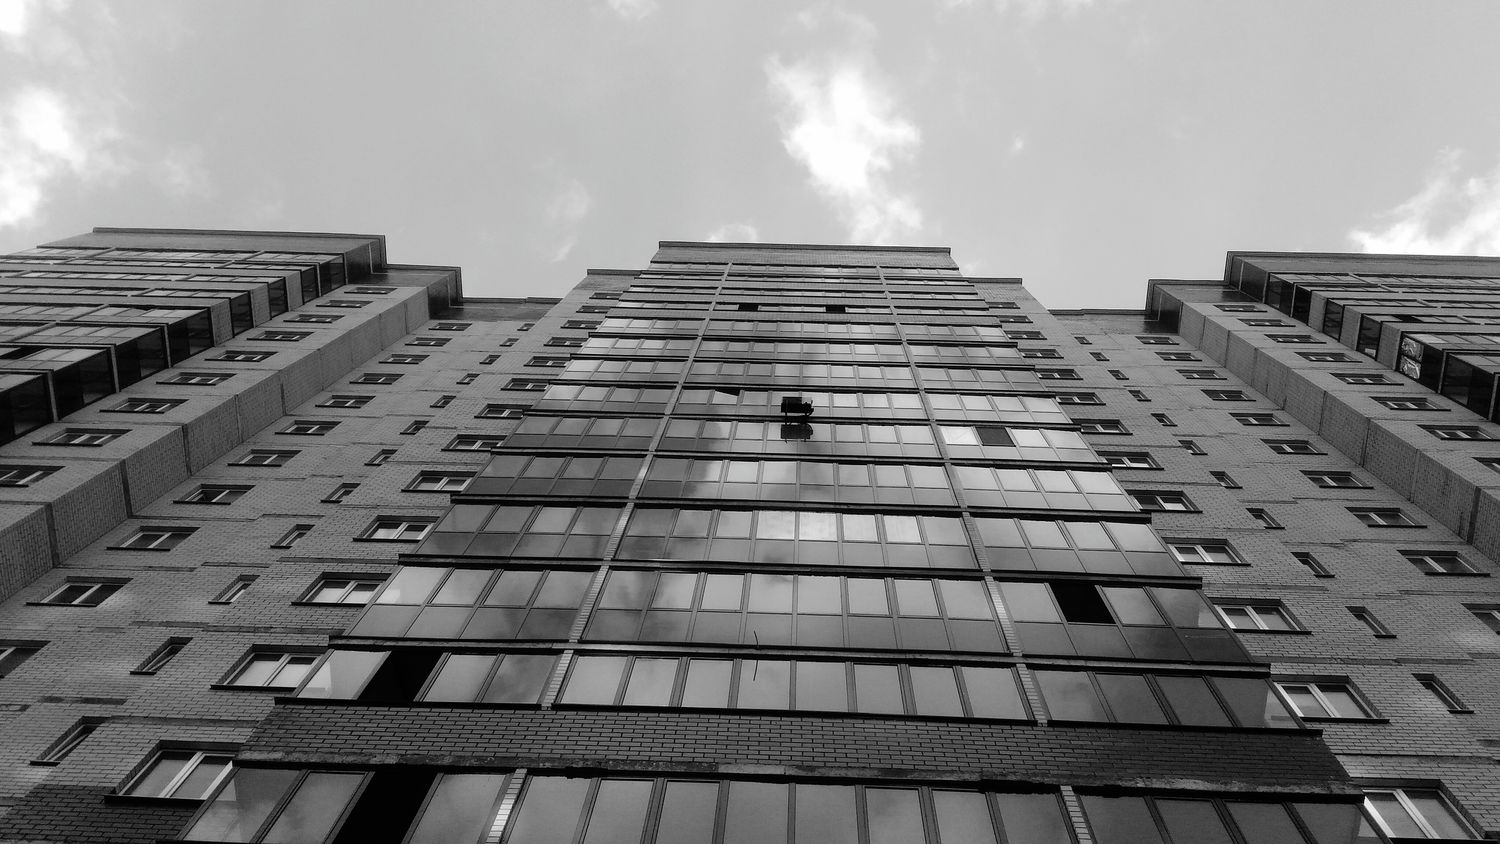 Building Exterior Architecture City Sky Window Built Structure Outdoors No People Day Skyscraper Grey White Black